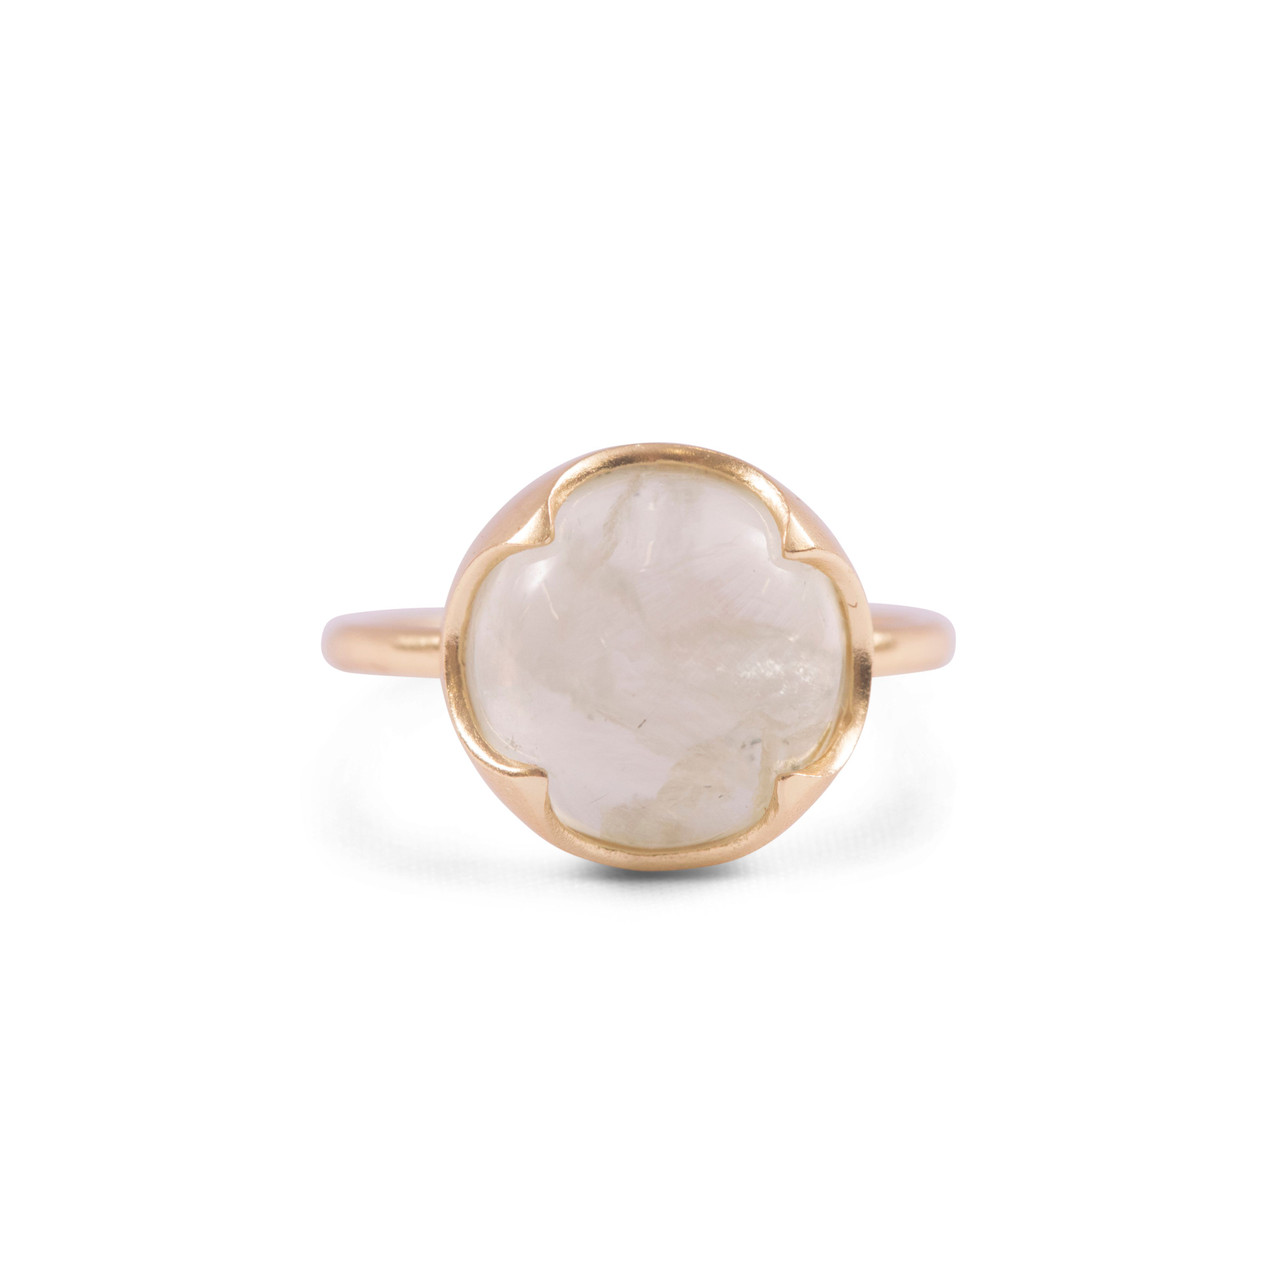 Gold Plated Ring with Large Prehnite